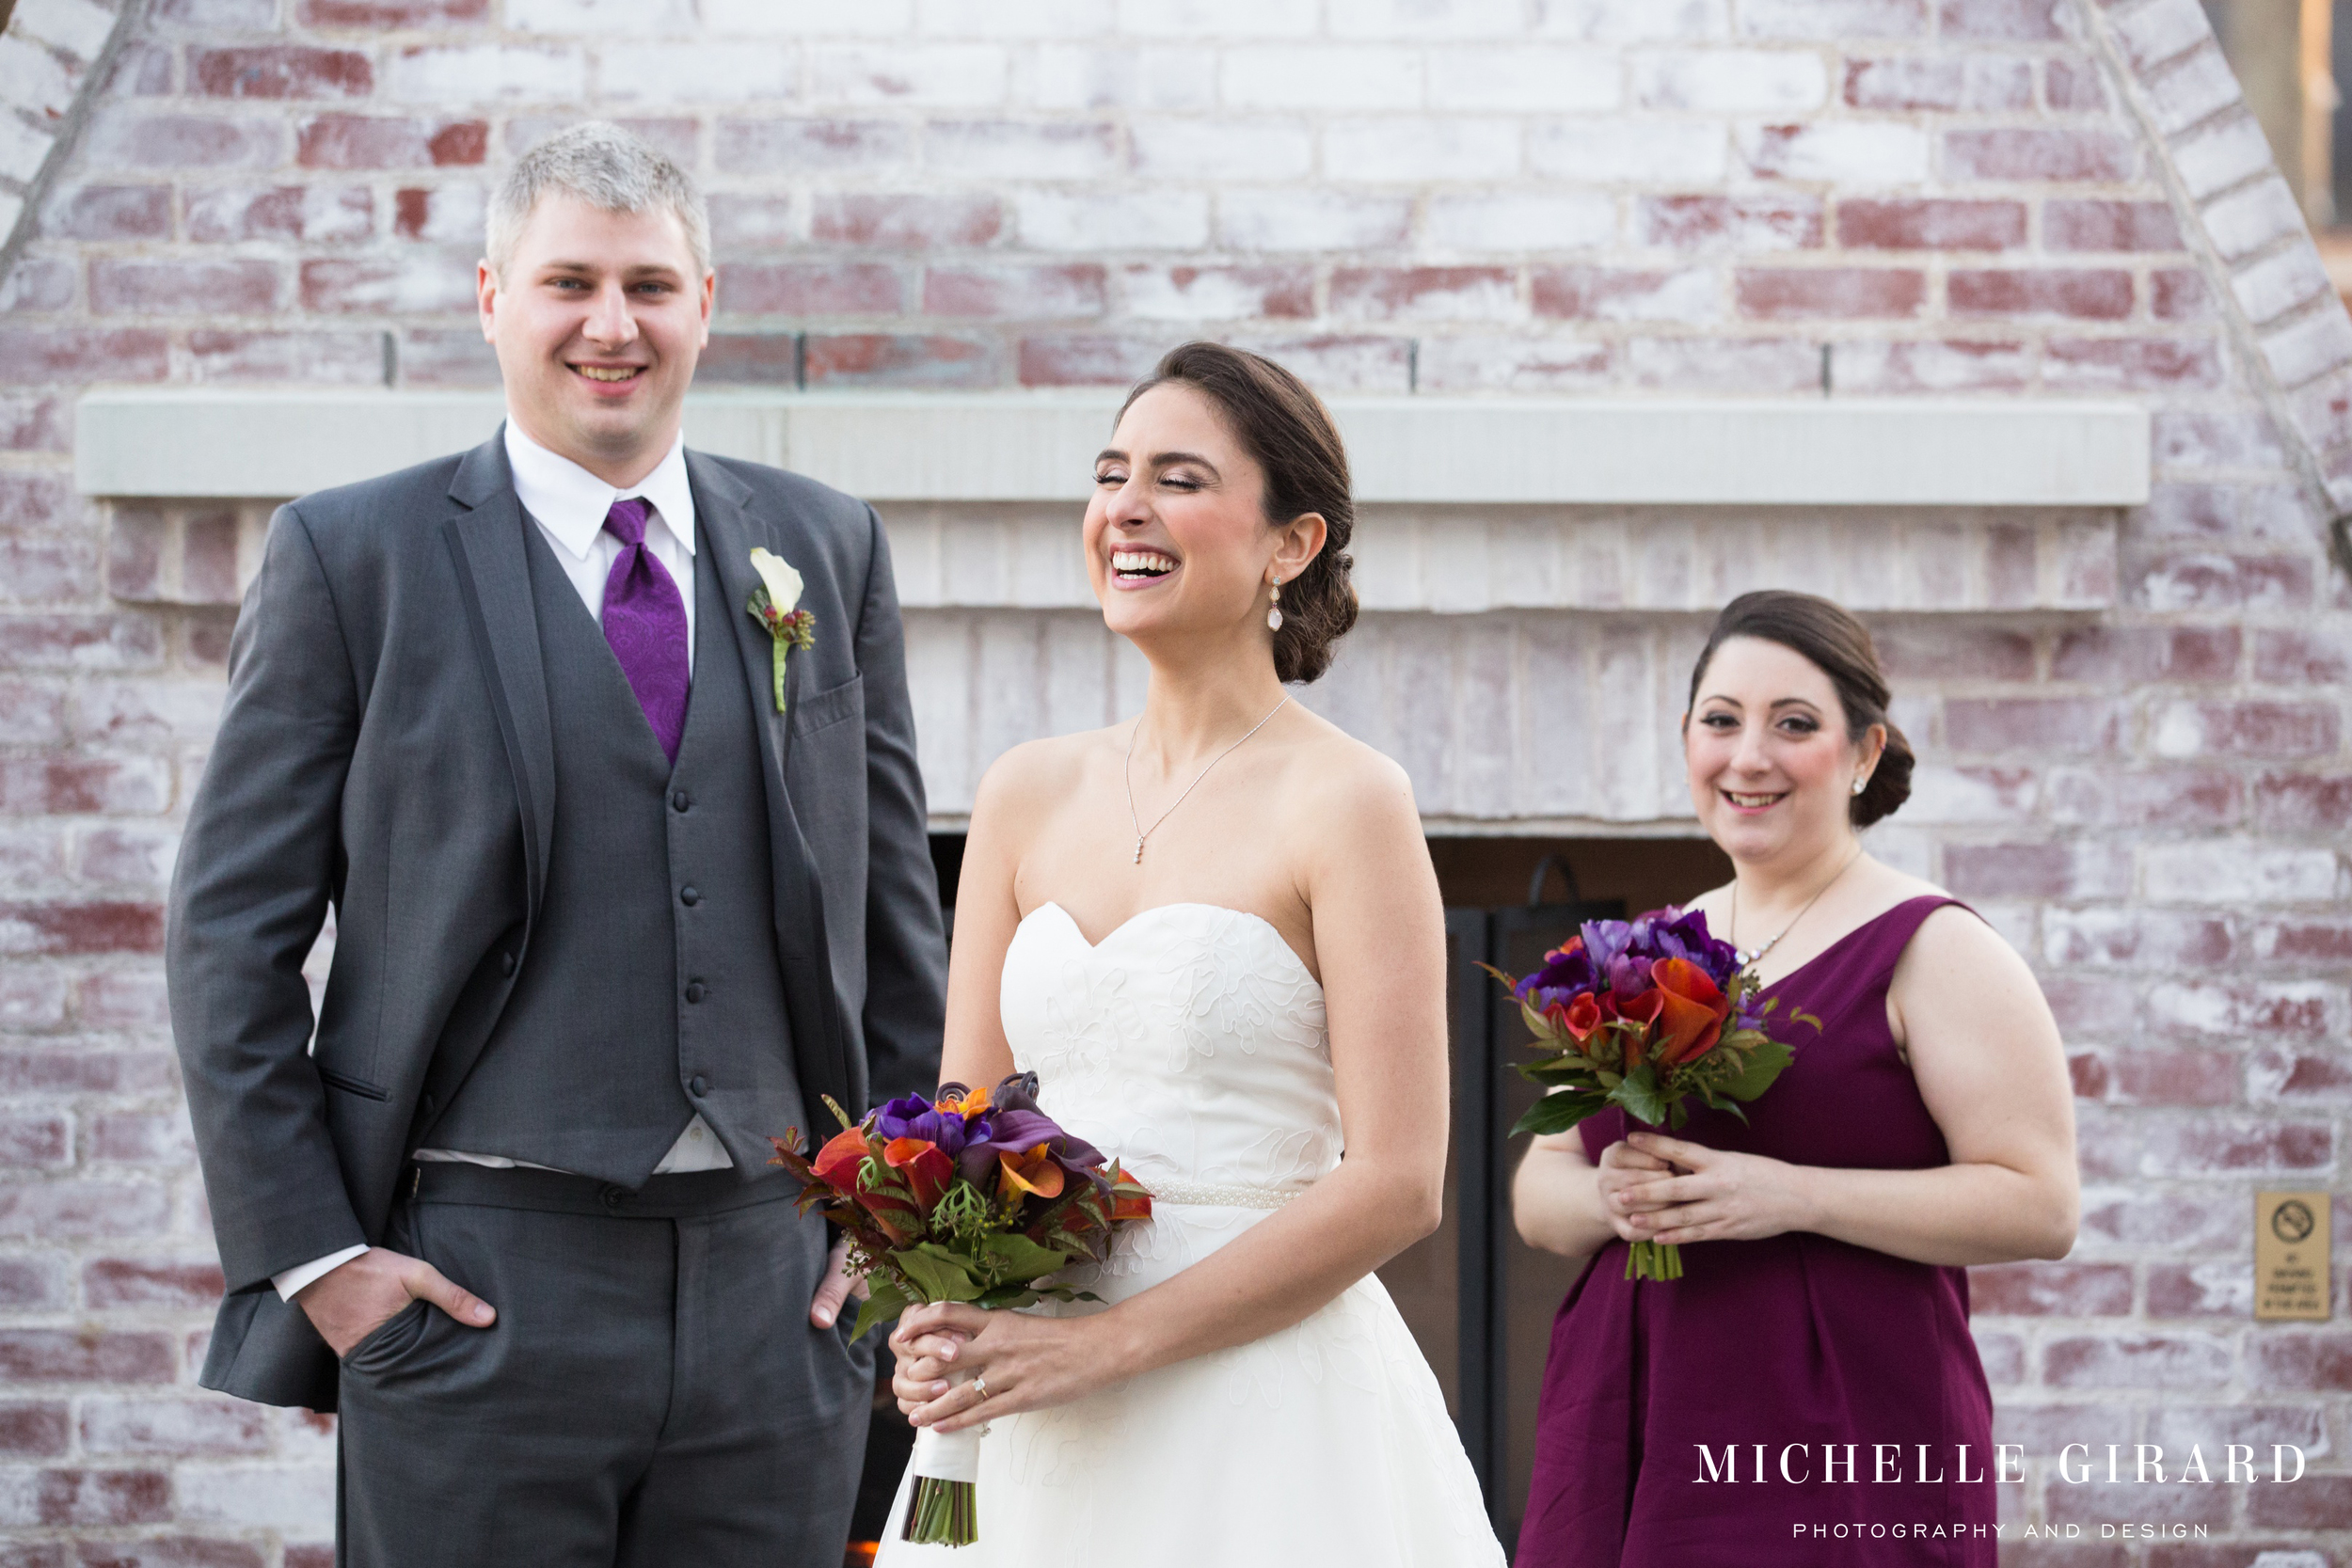 LordJefferyInnWedding_AmherstMa_MichelleGirardPhotography17.jpg